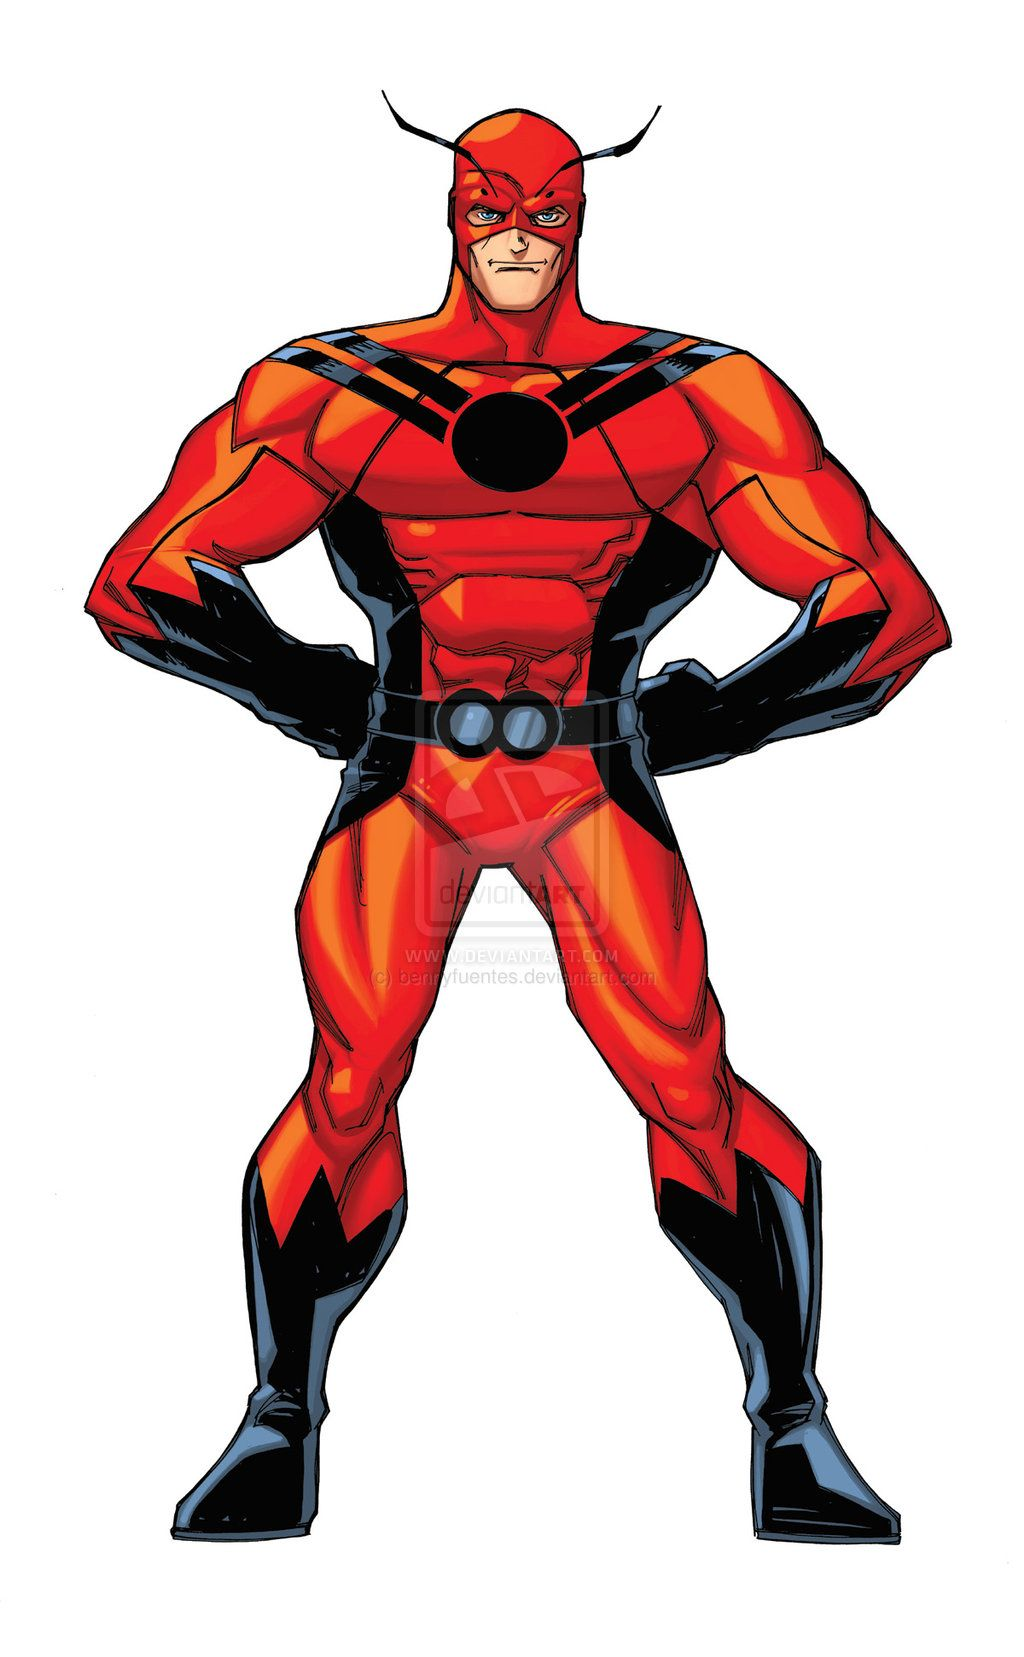 It is a picture of Sweet Marvel Heroes Ant Man